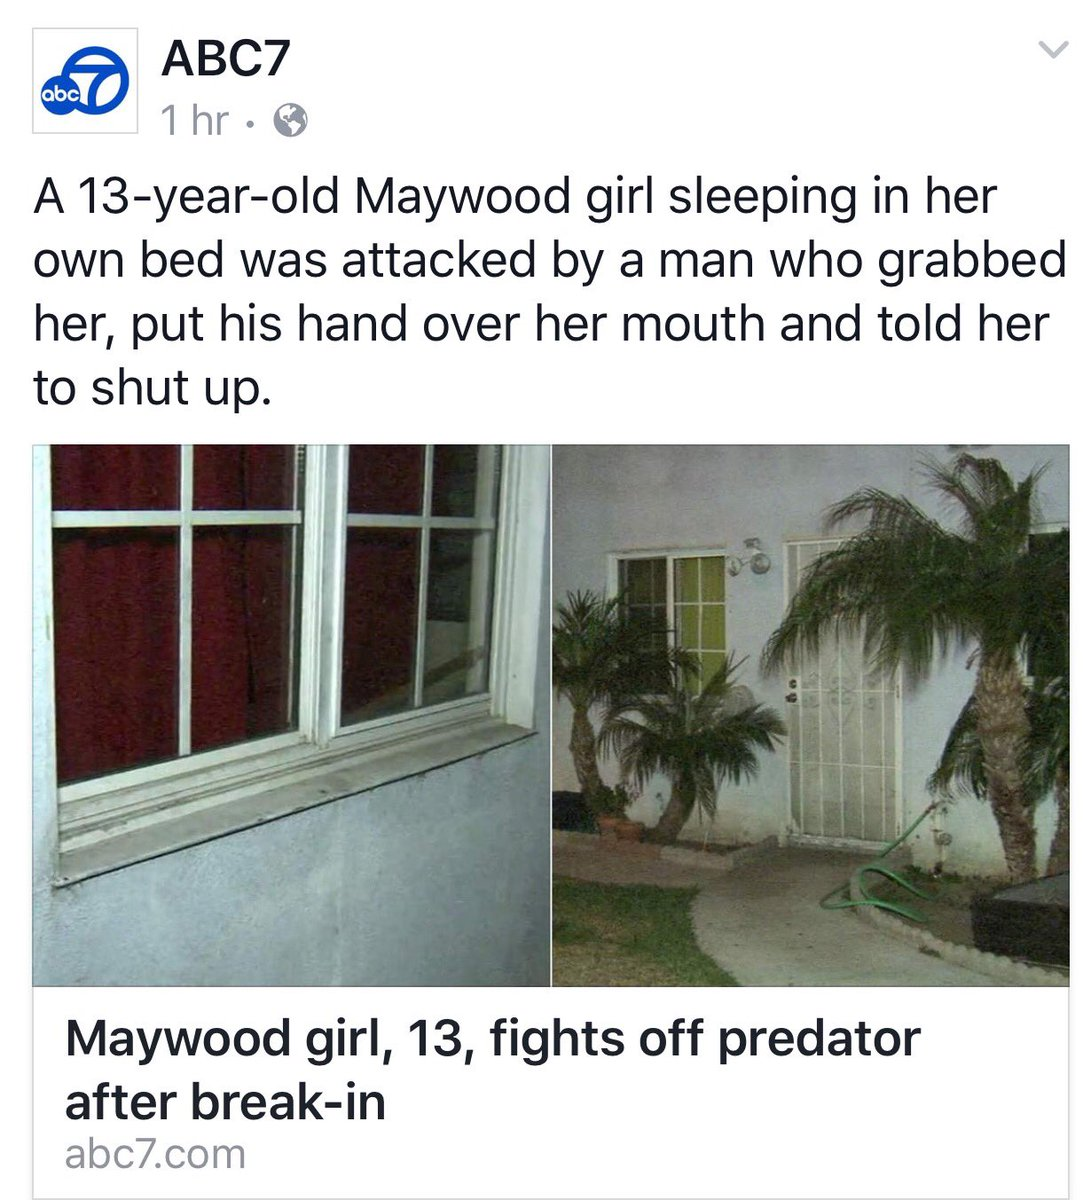 Maywood residents are on edge after a prowler is caught groping a 13 year old girl in her bedroom. Details on abc7